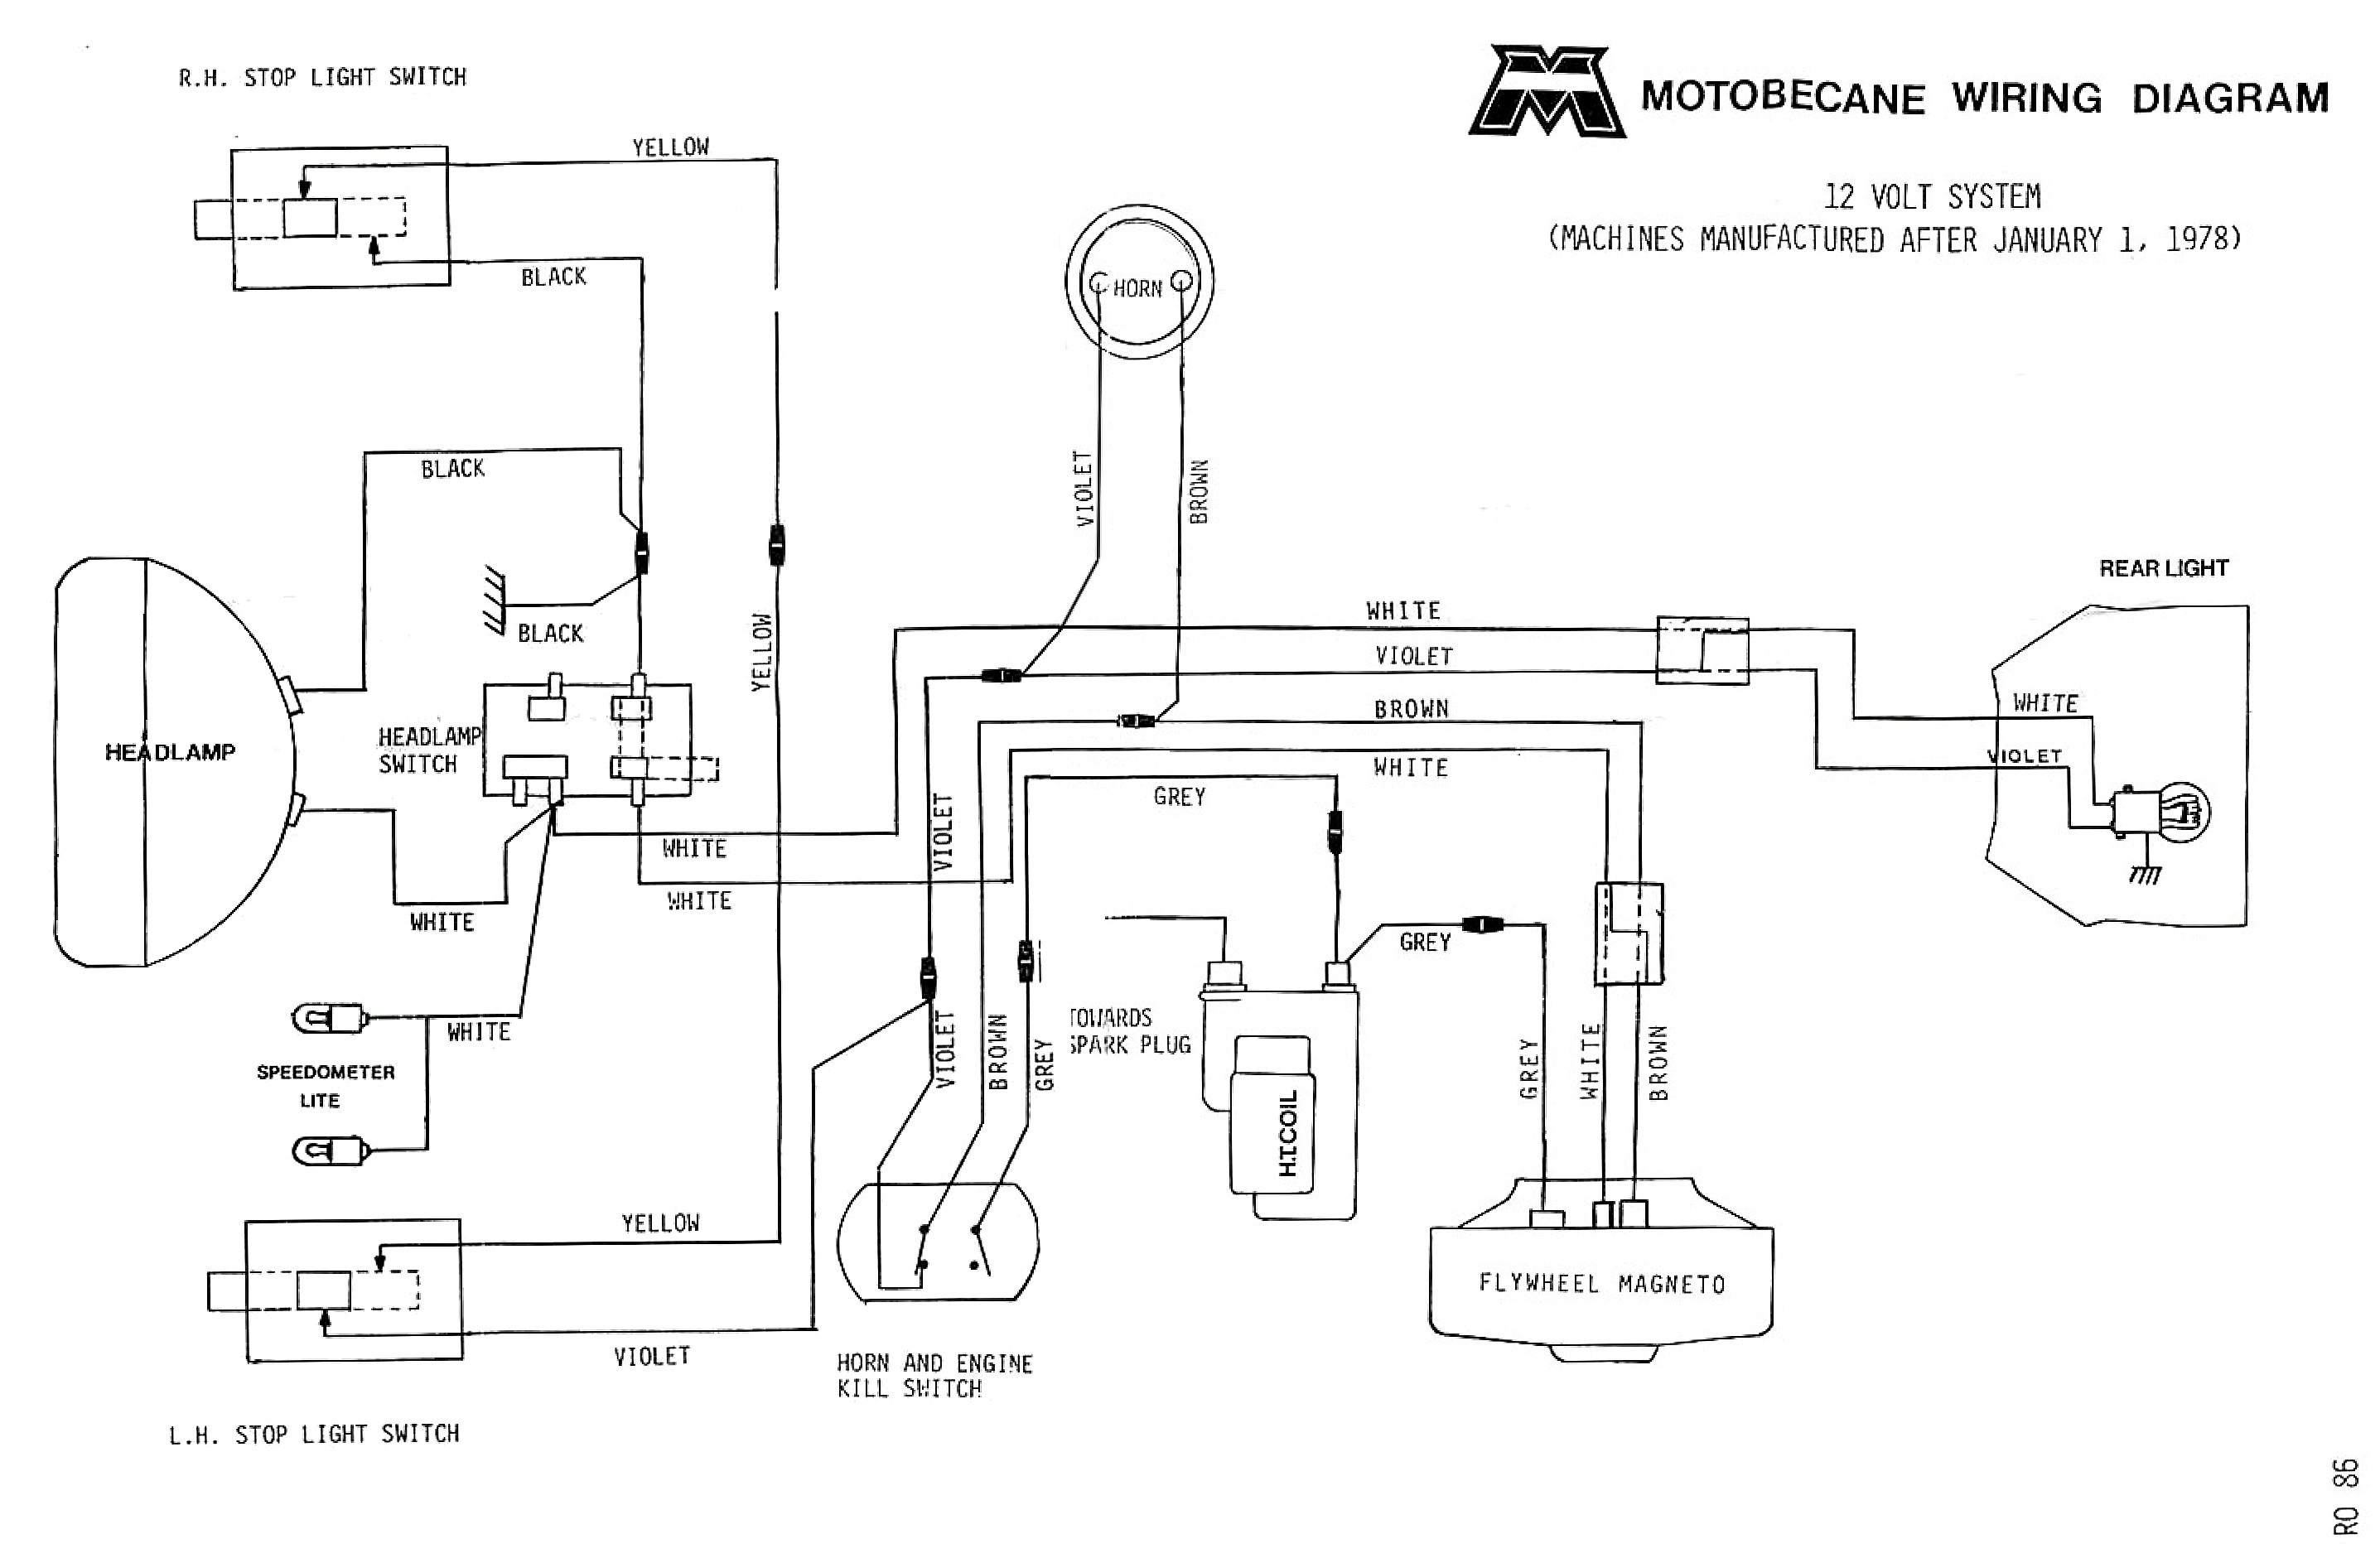 [DVZP_7254]   Ford 8n 6 Volt Wiring - 2000 Chevy Malibu Fuse Diagram for Wiring Diagram  Schematics | Ford Naa 6 Volt Wiring Diagram |  | Wiring Diagram Schematics